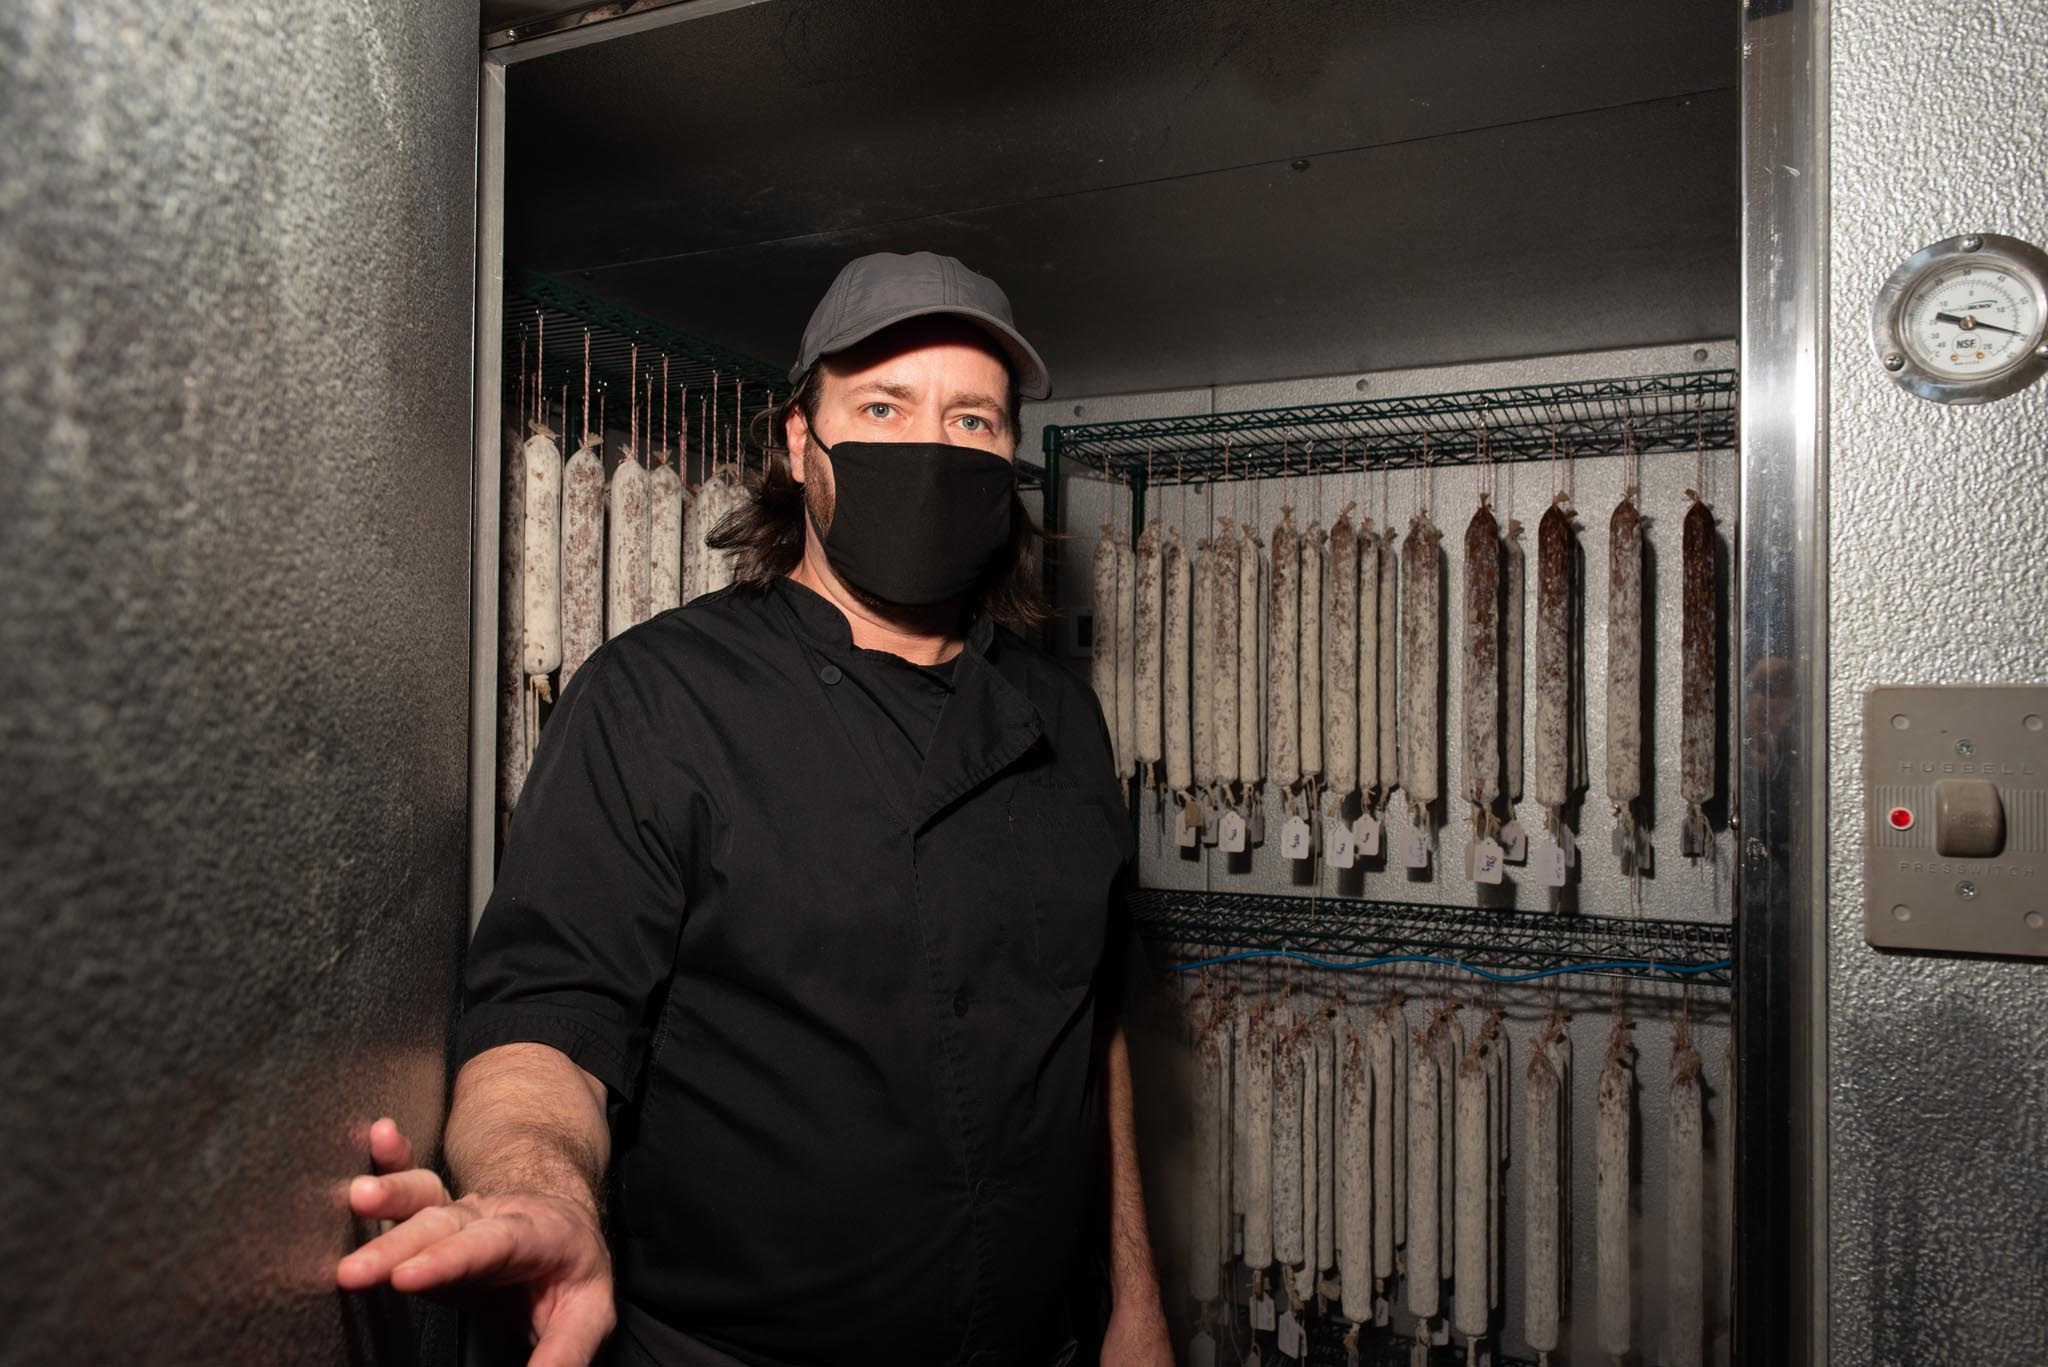 Chef and owner Tristan Foucault shows off the charcuterie walk-in cooler for their house-made cured meats.